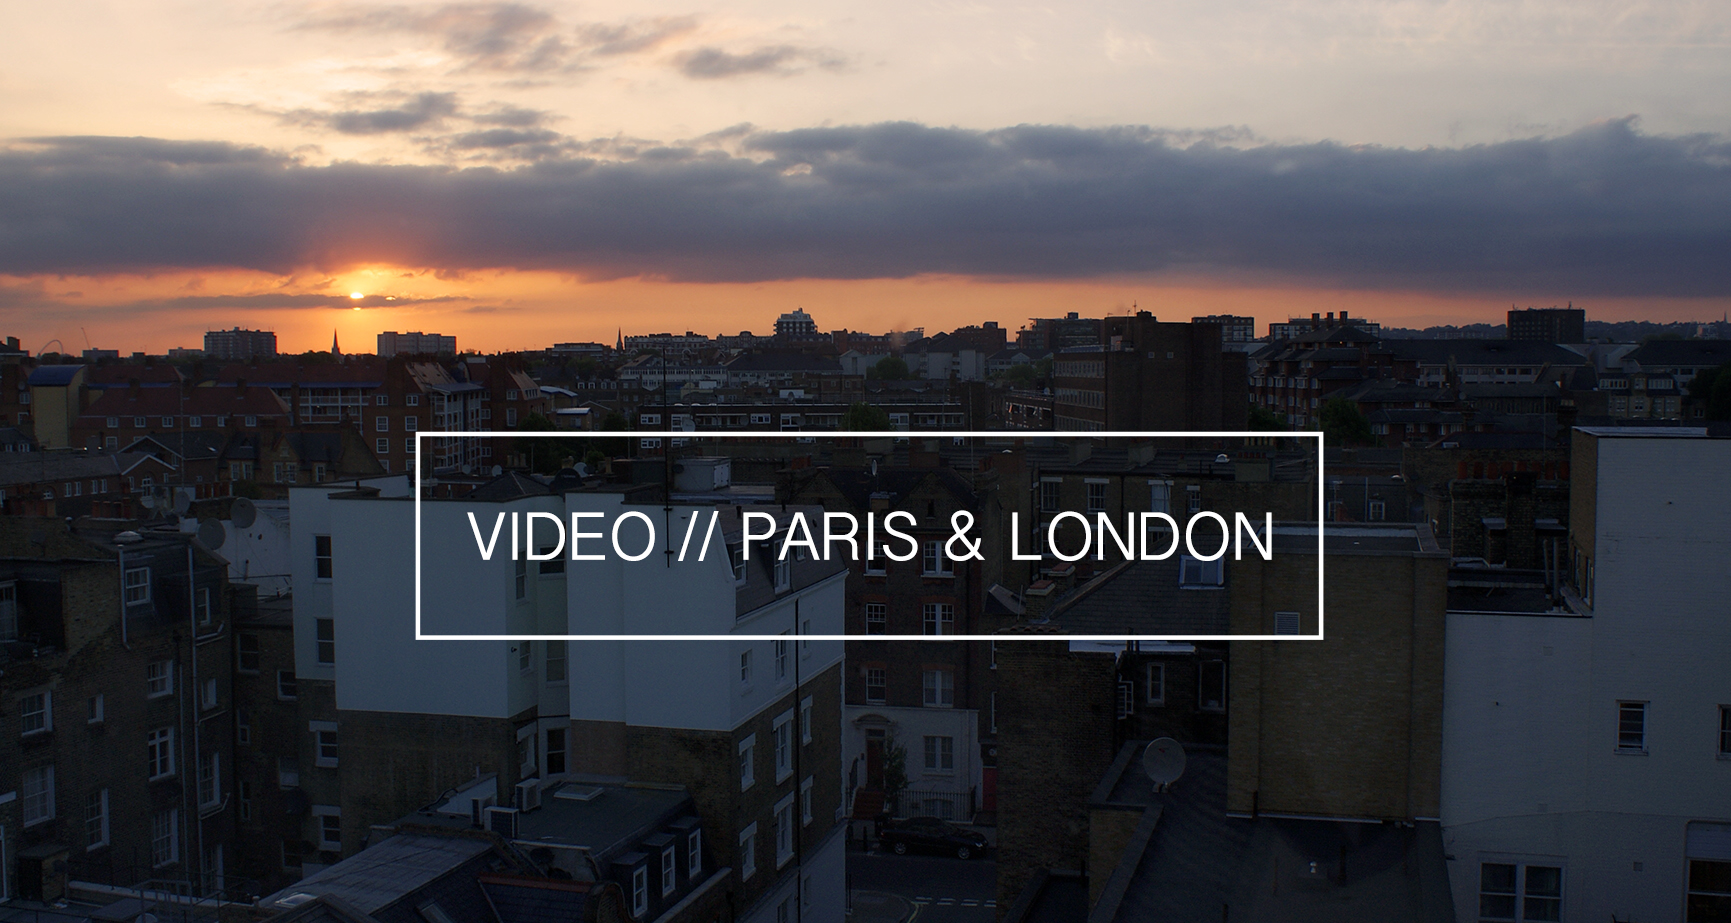 Video Paris & London